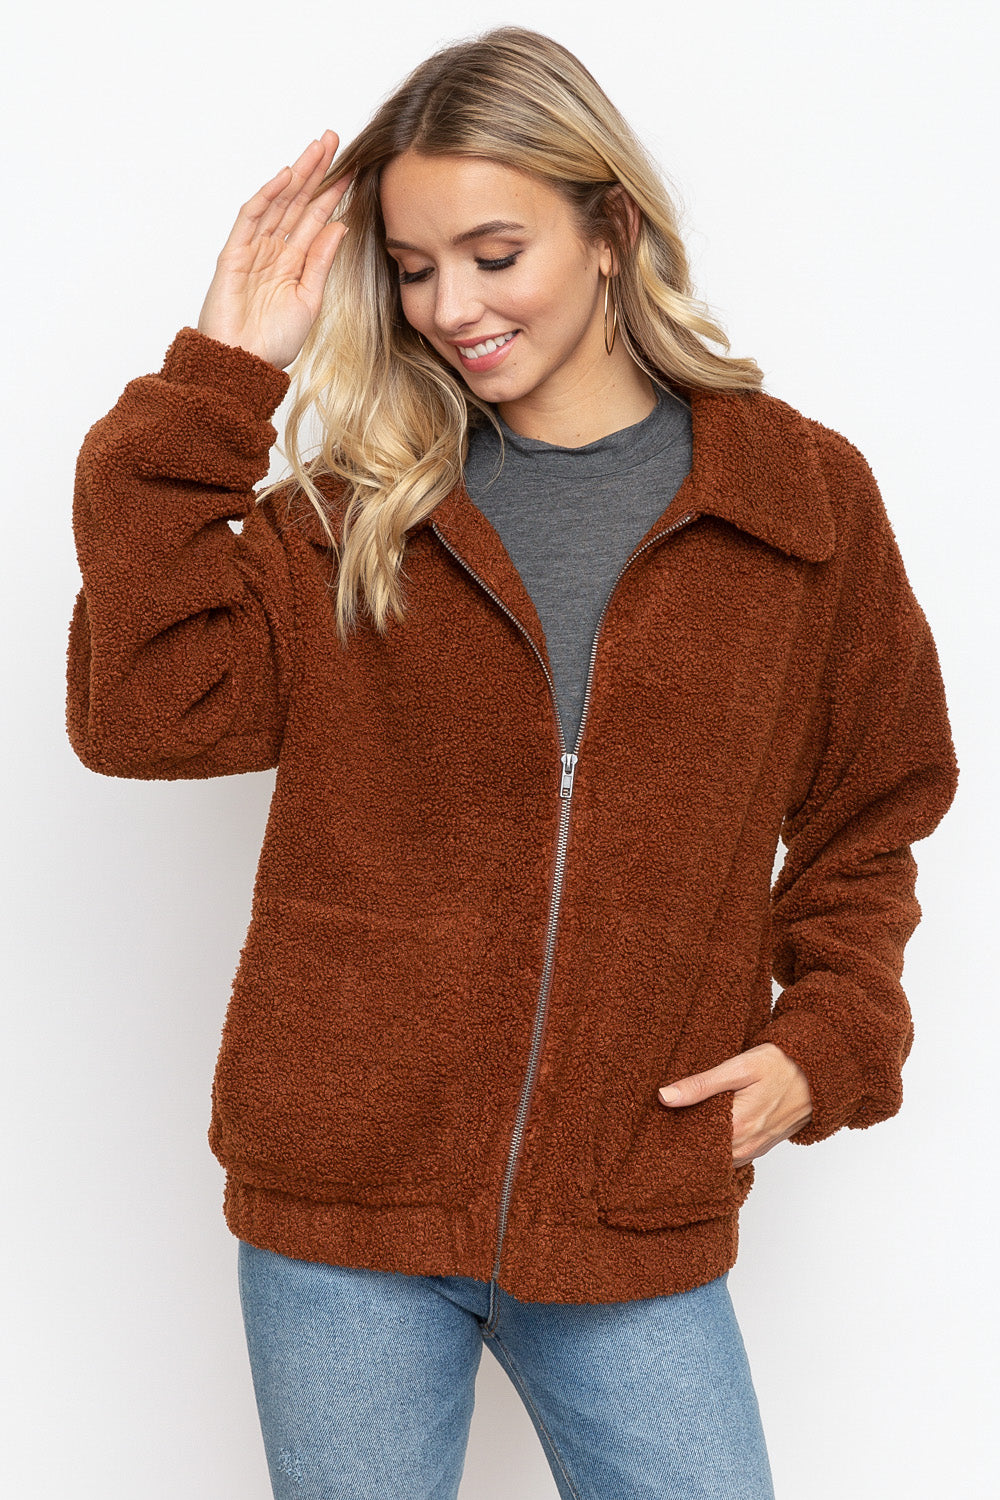 COPPER BROWN CROPPED TEDDY JACKET